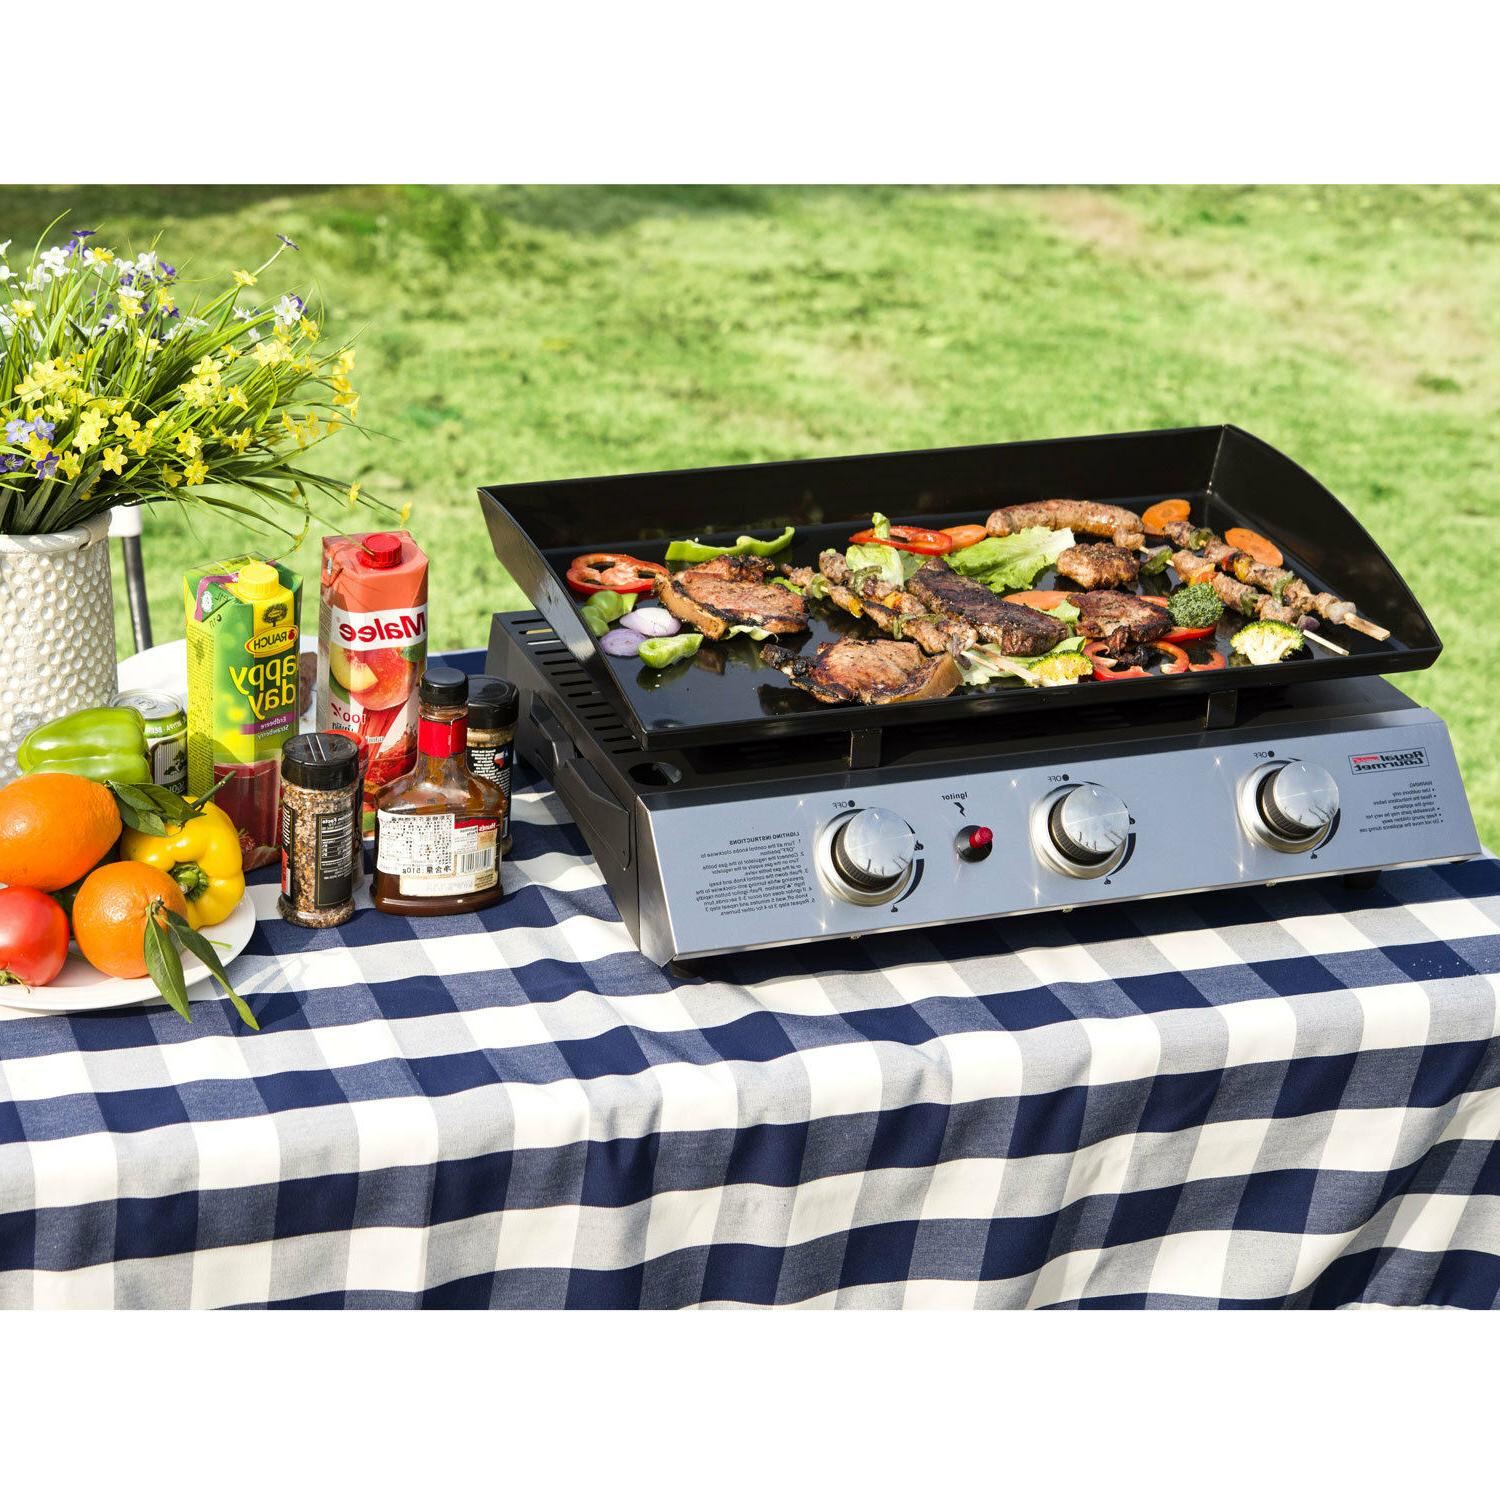 Royal Gourmet Portable 3-Burner Grill Griddle Camping